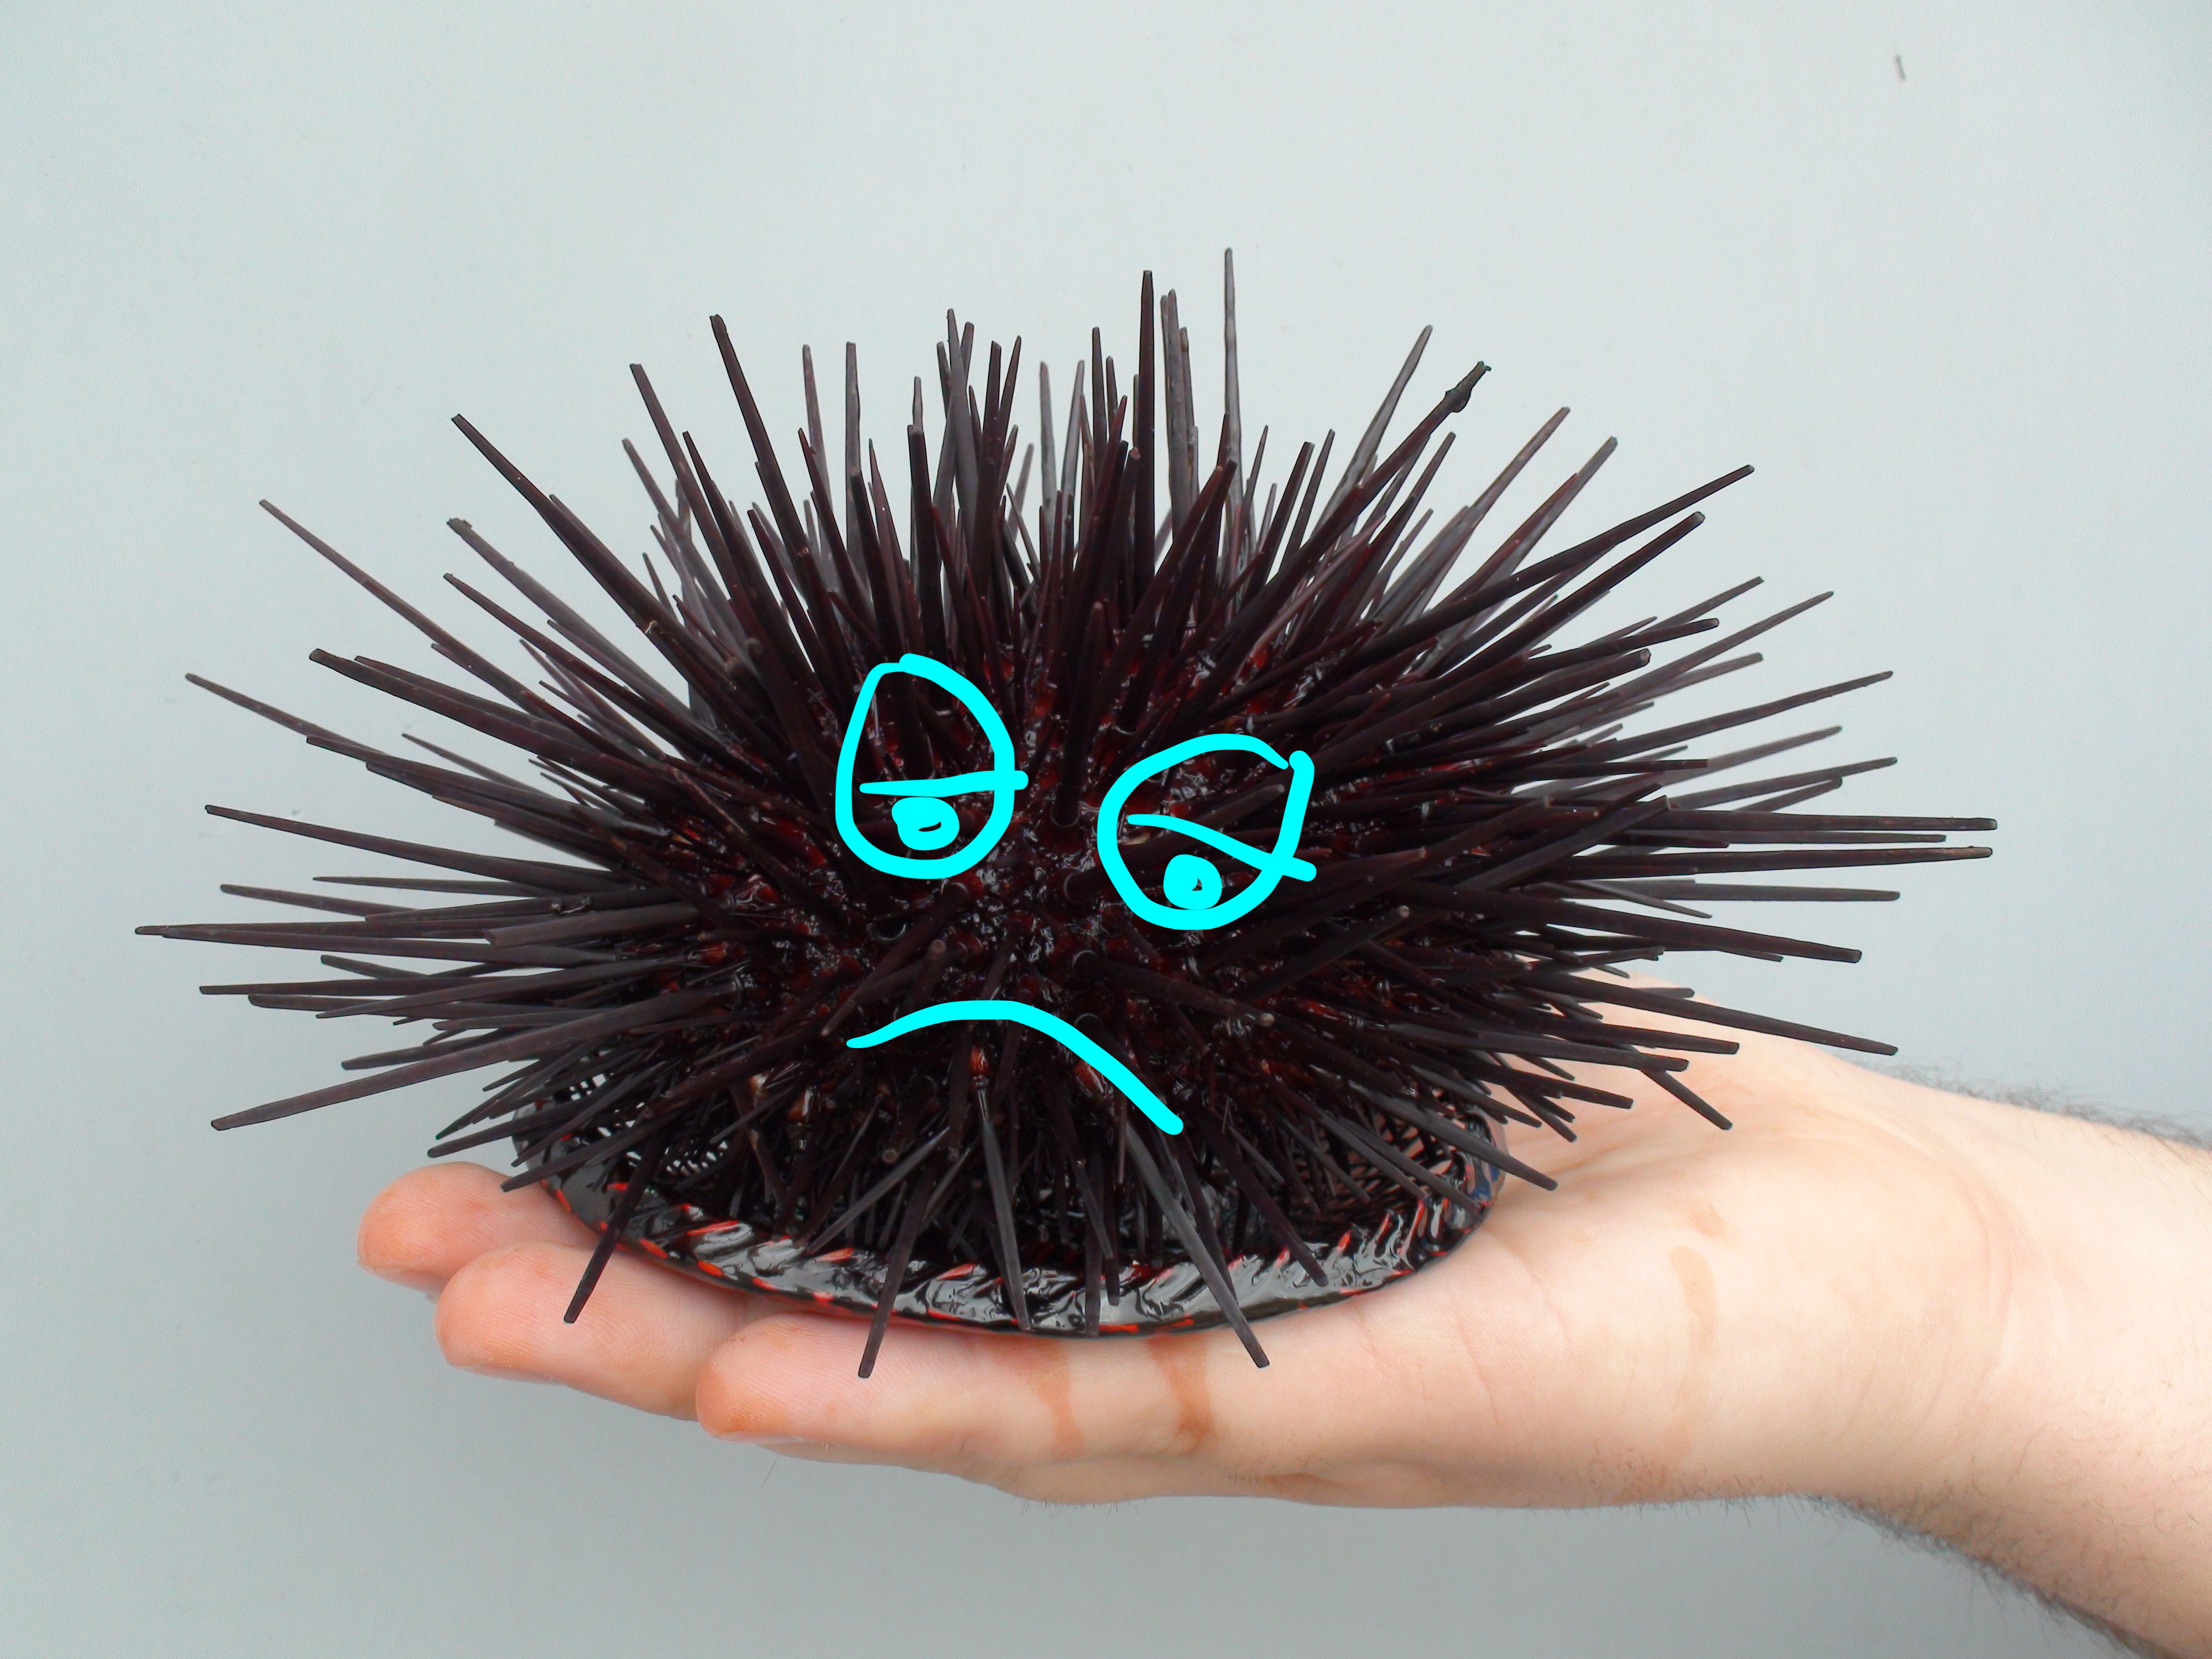 Urchin will not be available for delivery tonight 9/10/19; Divers were unable to go out this weekend due to high swells and low visibility.